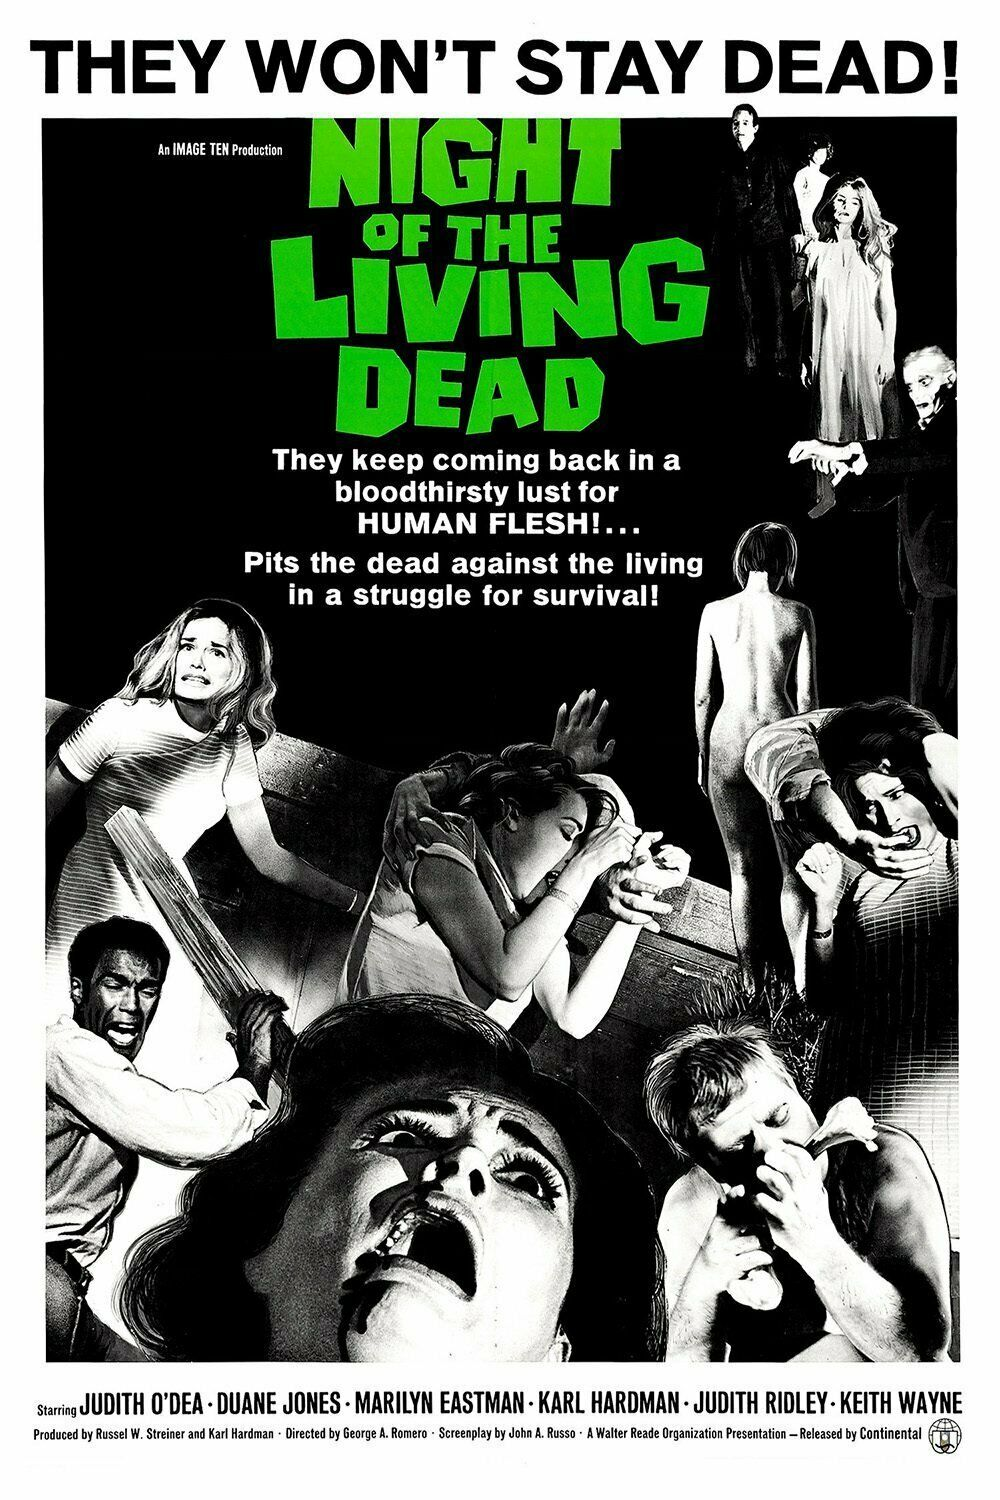 Night of the Living Dead Movie Poster Photo 8x10 11x17 16x20 22x28 24x36 27x40